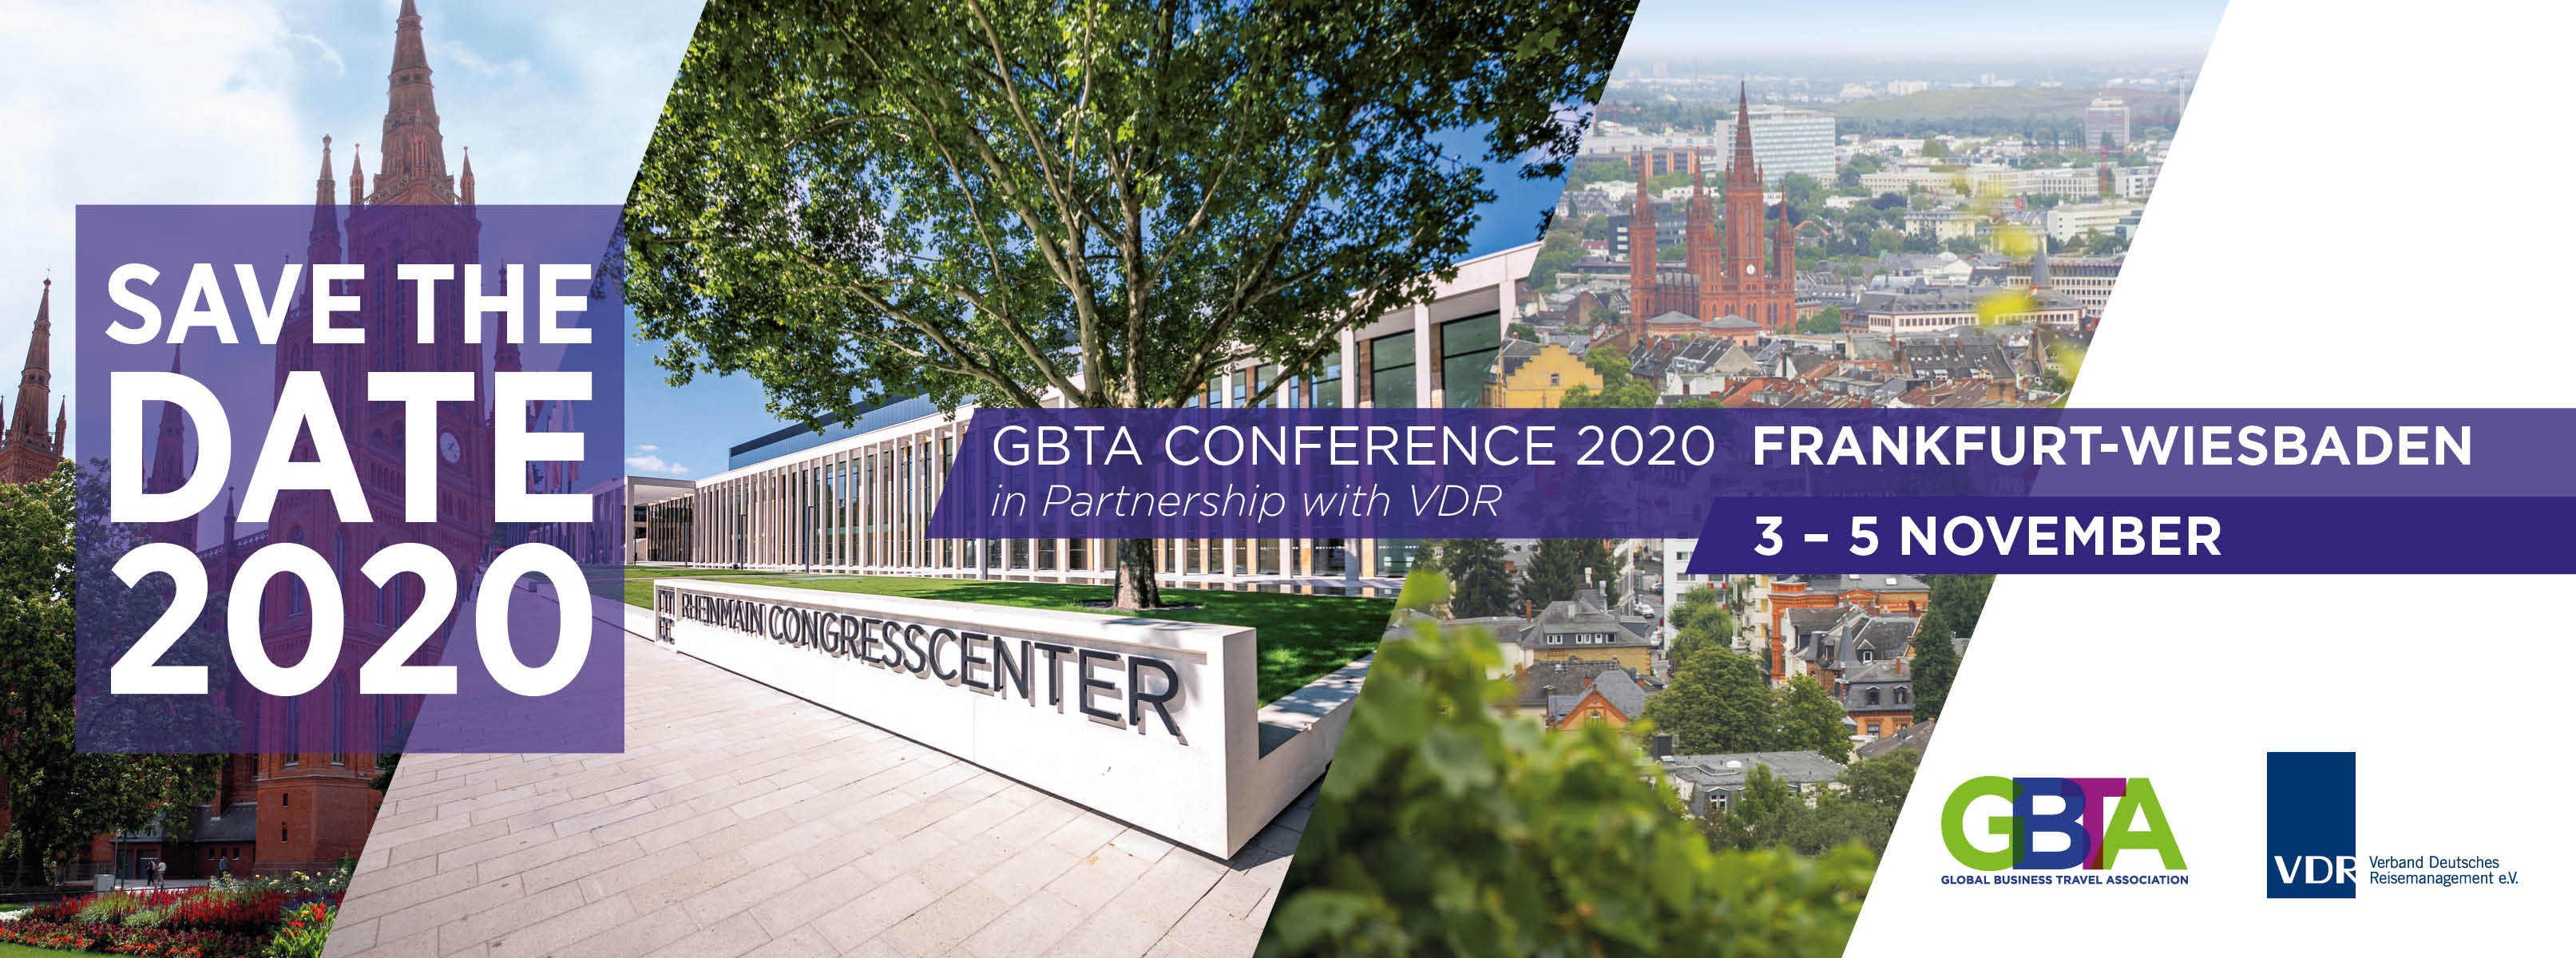 SAVE THE DATE - GBTA CONFERENCE 2020 - FRANKFURT-WIESBADEN - 3-5 NOVEMBER